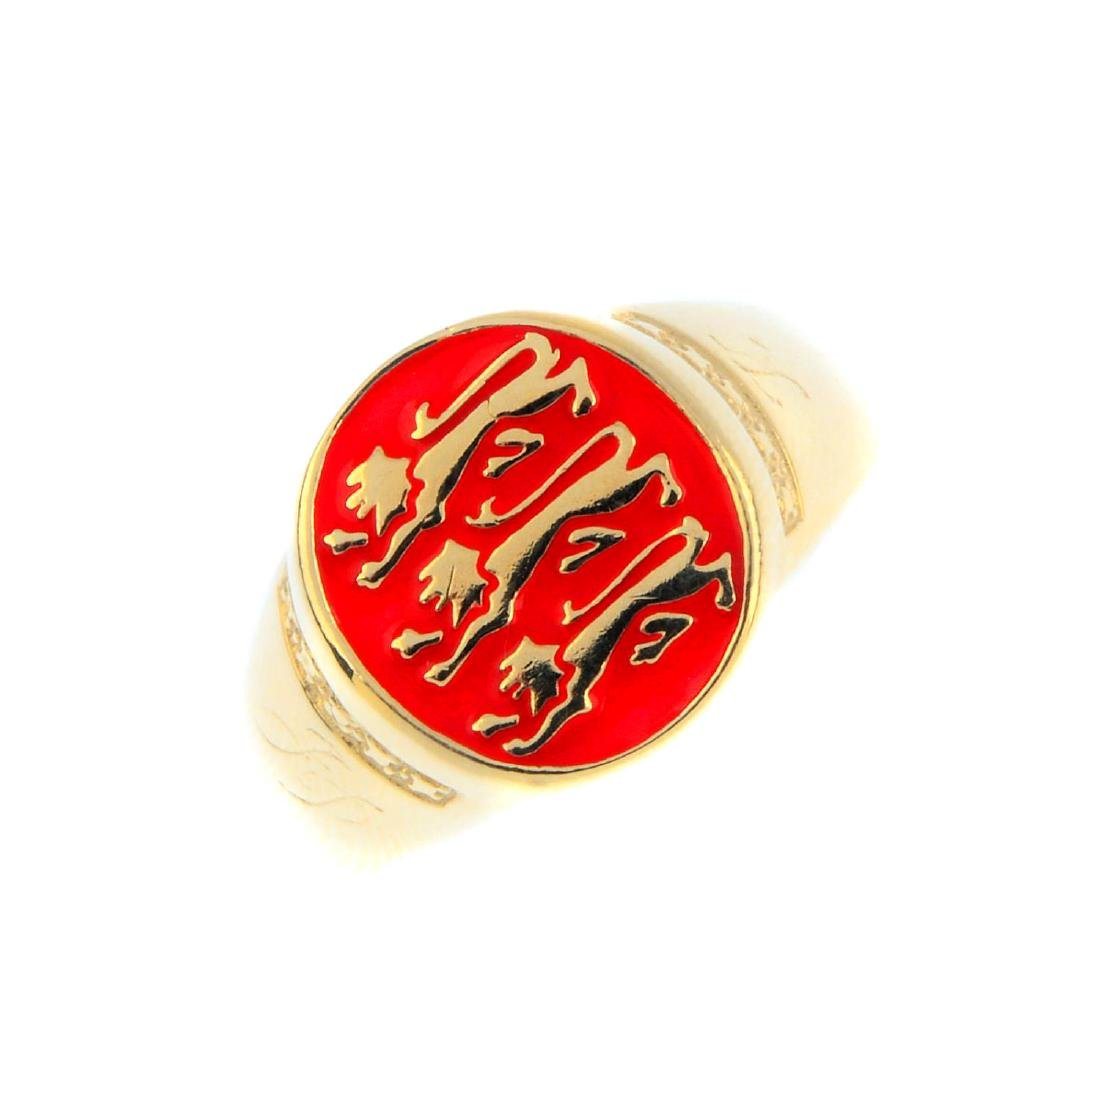 A gentleman's 9ct gold and enamel signet ring. Of oval